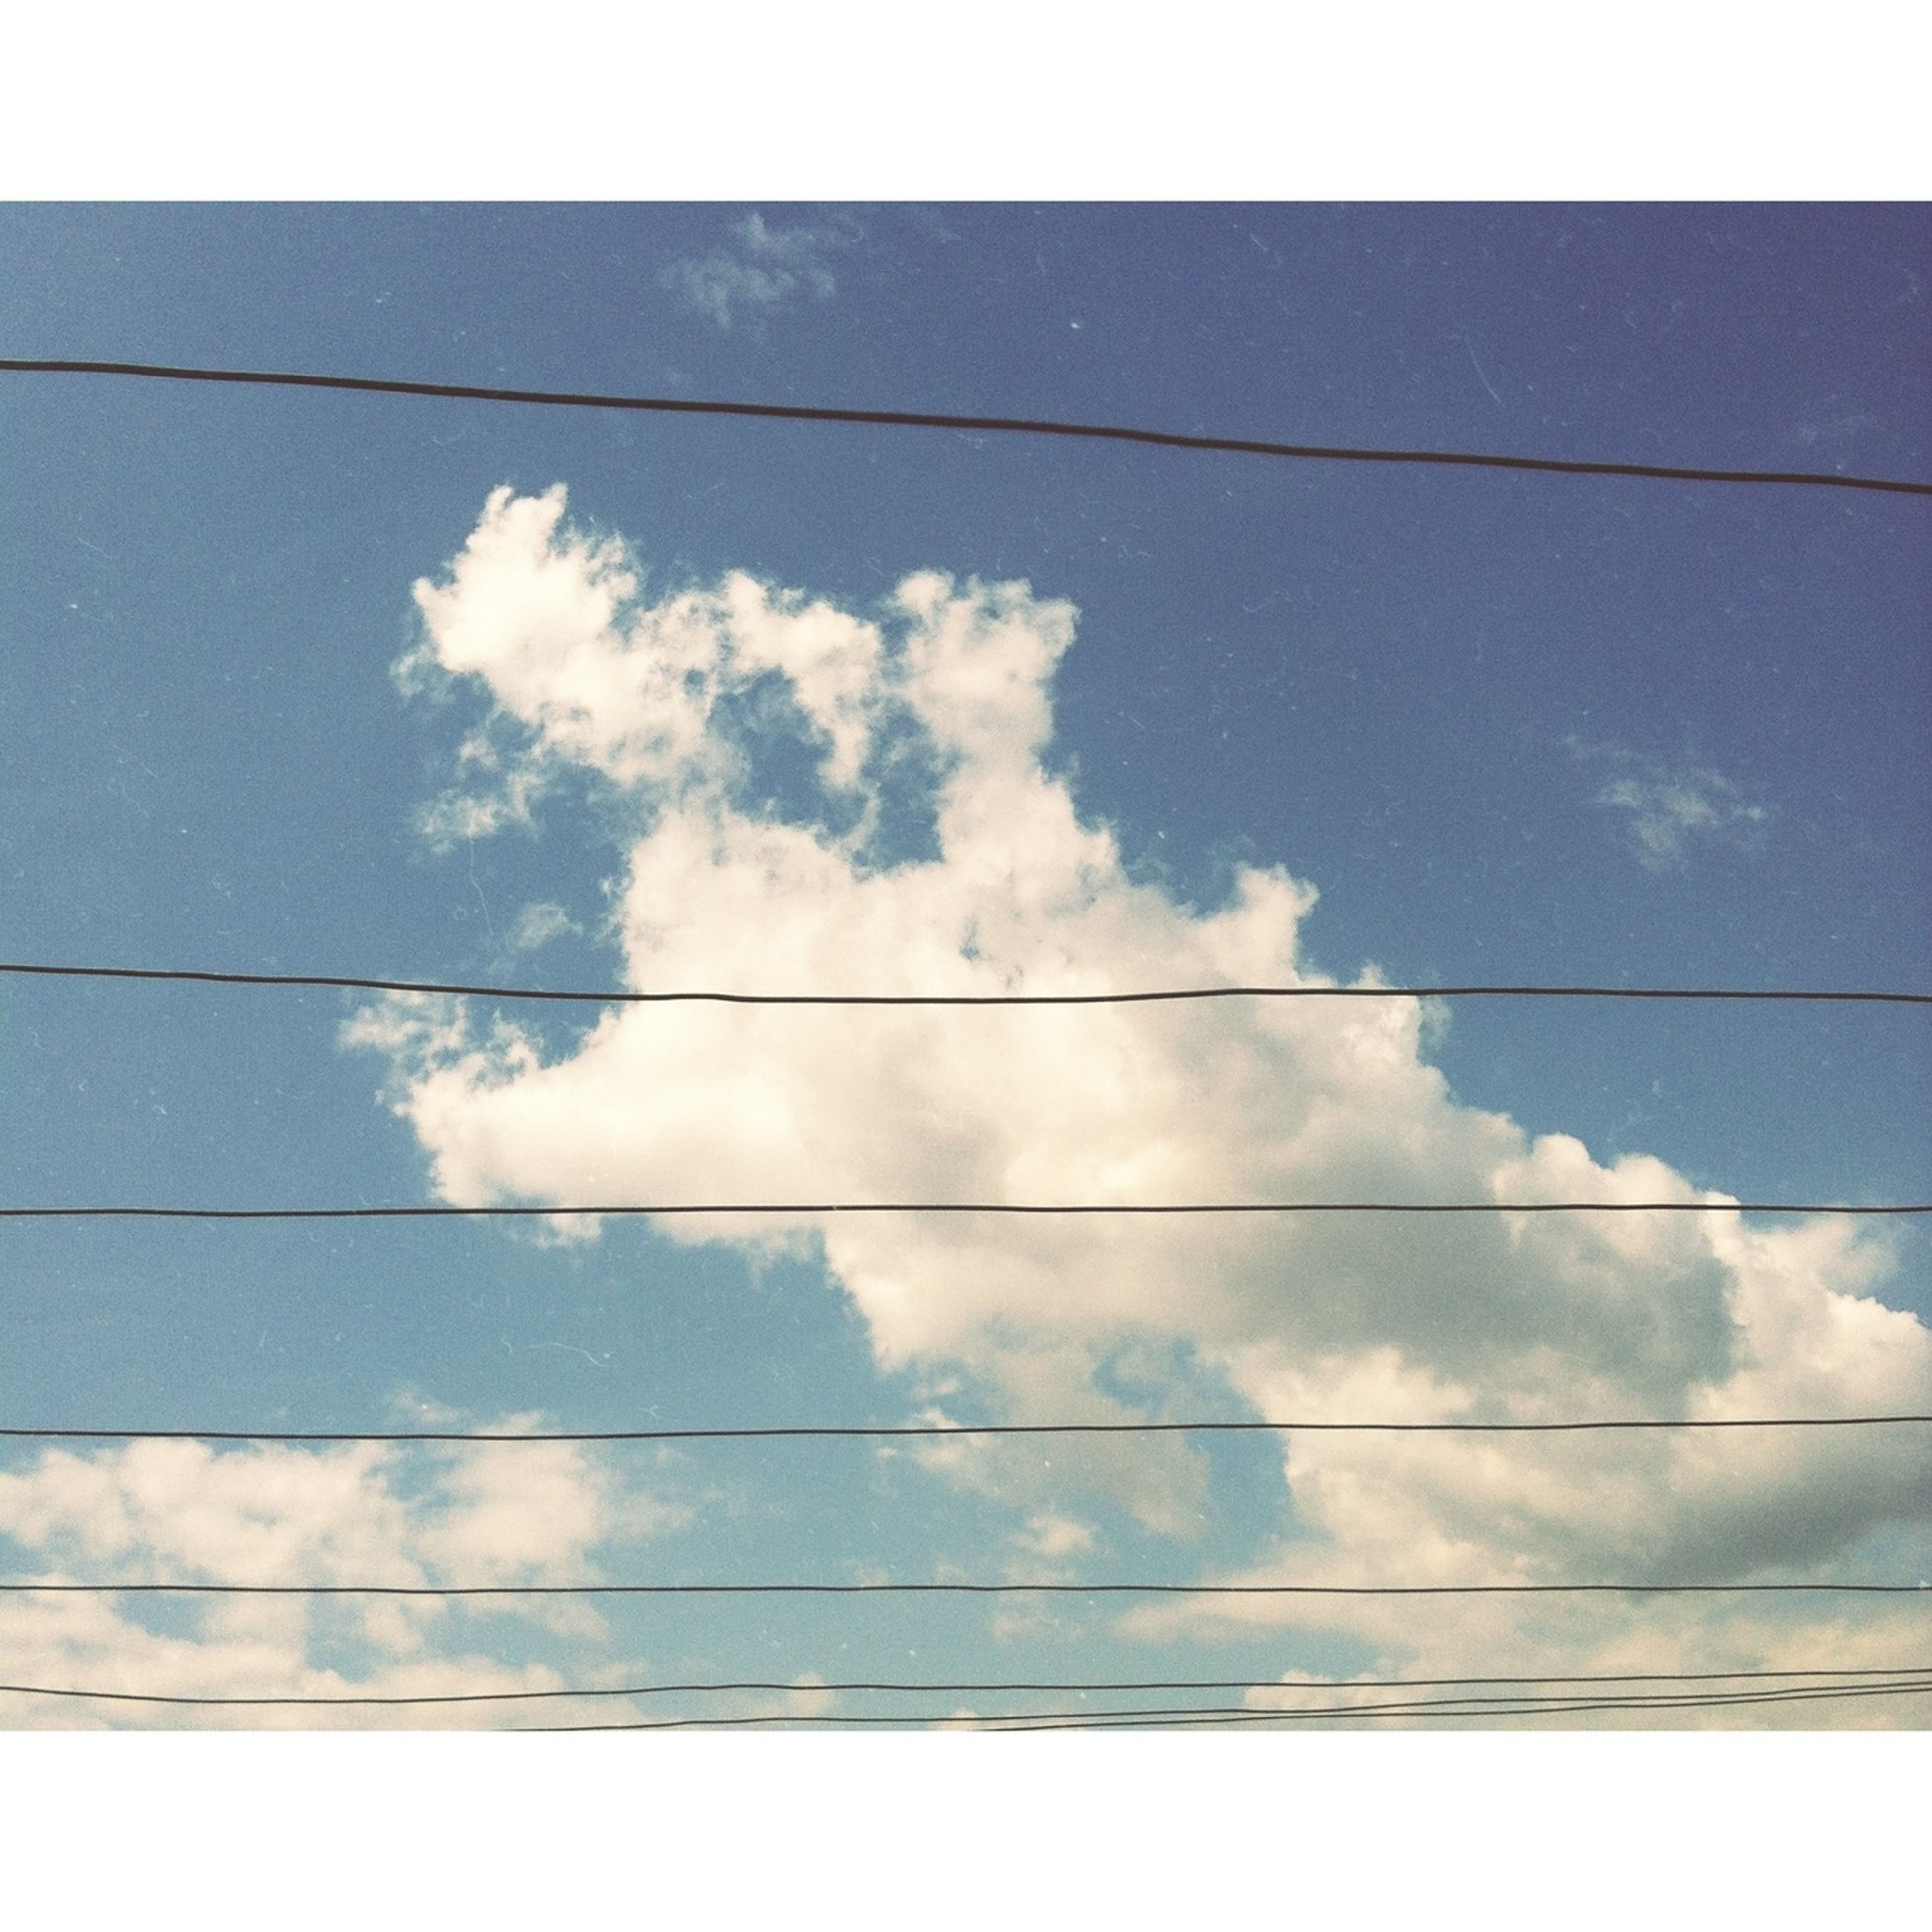 power line, sky, low angle view, power supply, electricity pylon, cable, cloud - sky, electricity, connection, transfer print, cloud, cloudy, fuel and power generation, blue, power cable, auto post production filter, nature, day, no people, technology